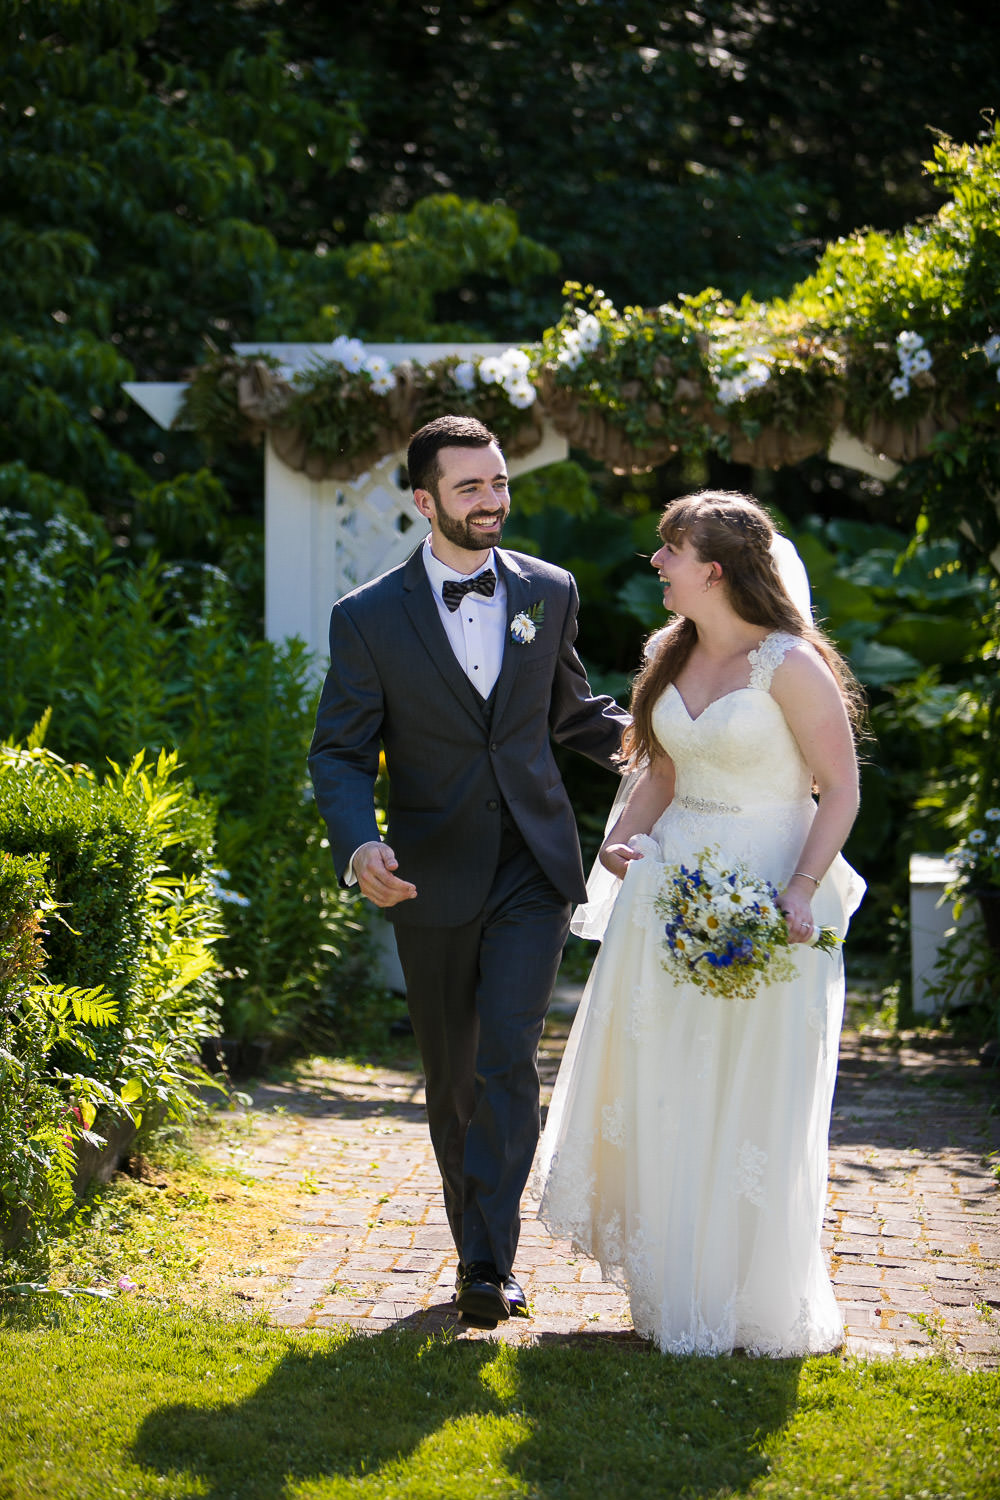 hartmans herb farm weddings, storytelling photos for a couple in love